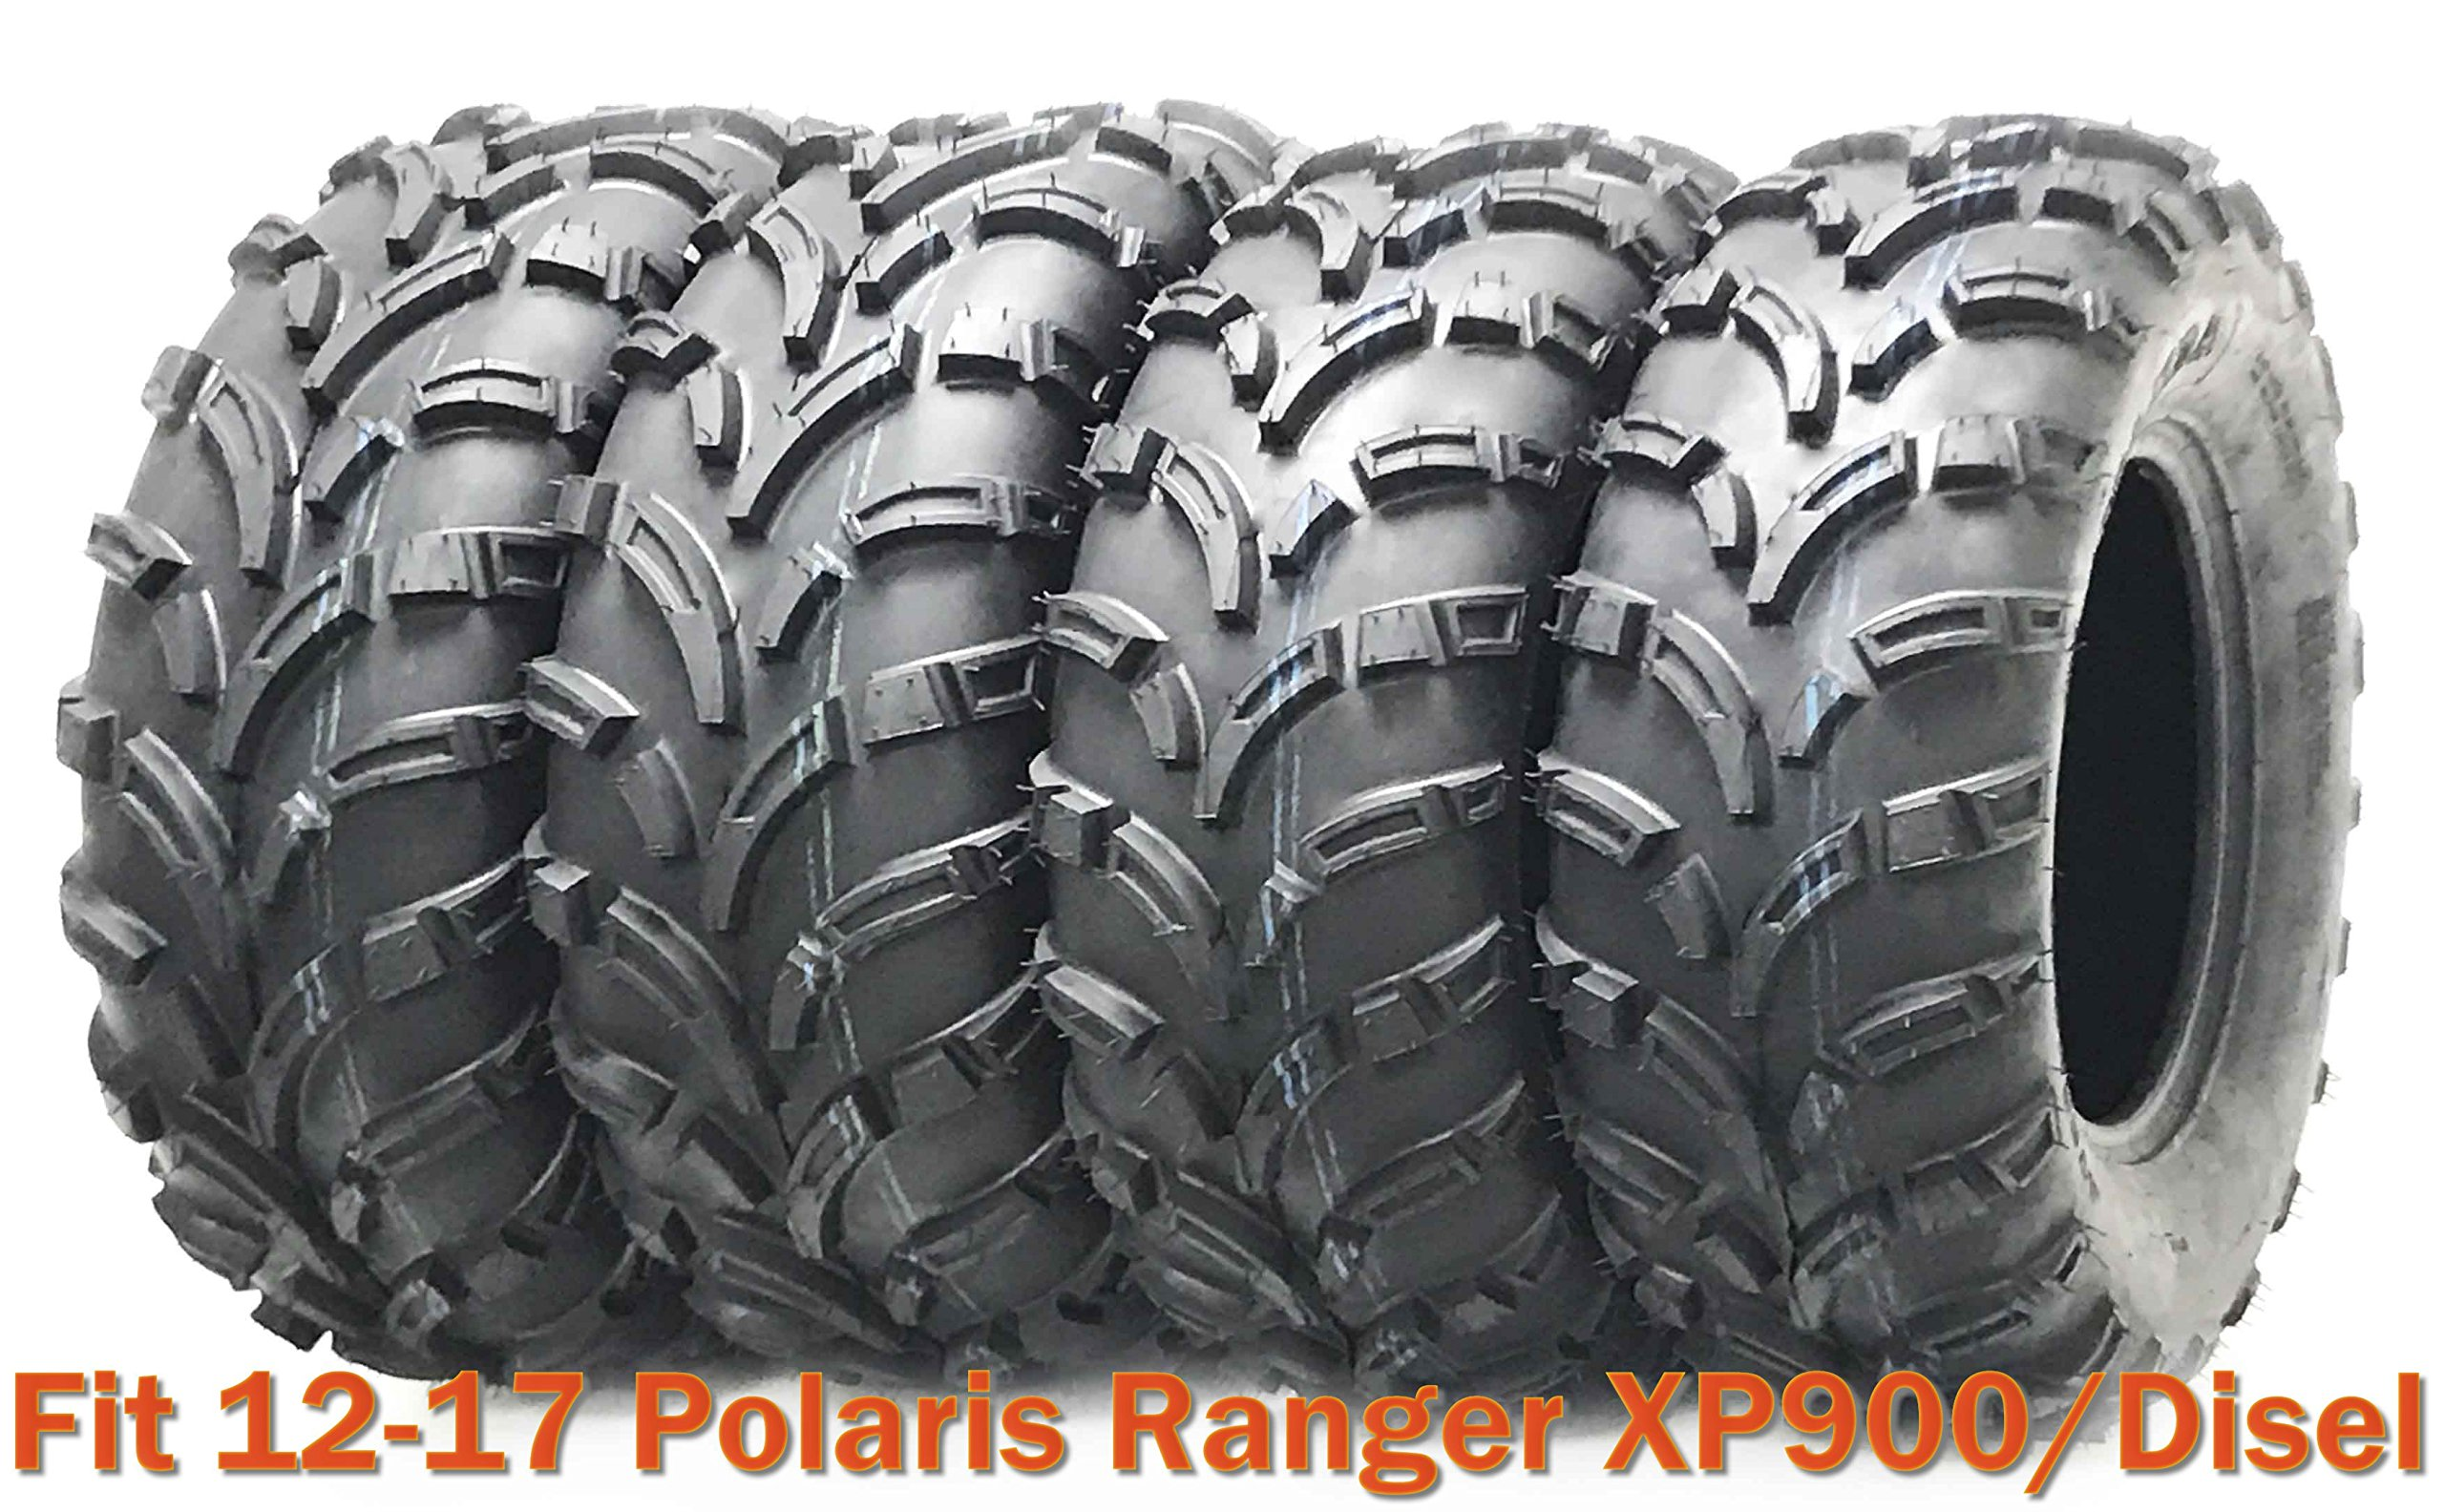 25x10-12 & 25x11-12 High Load ATV tires for 12-17 Polaris Ranger XP900/Disel